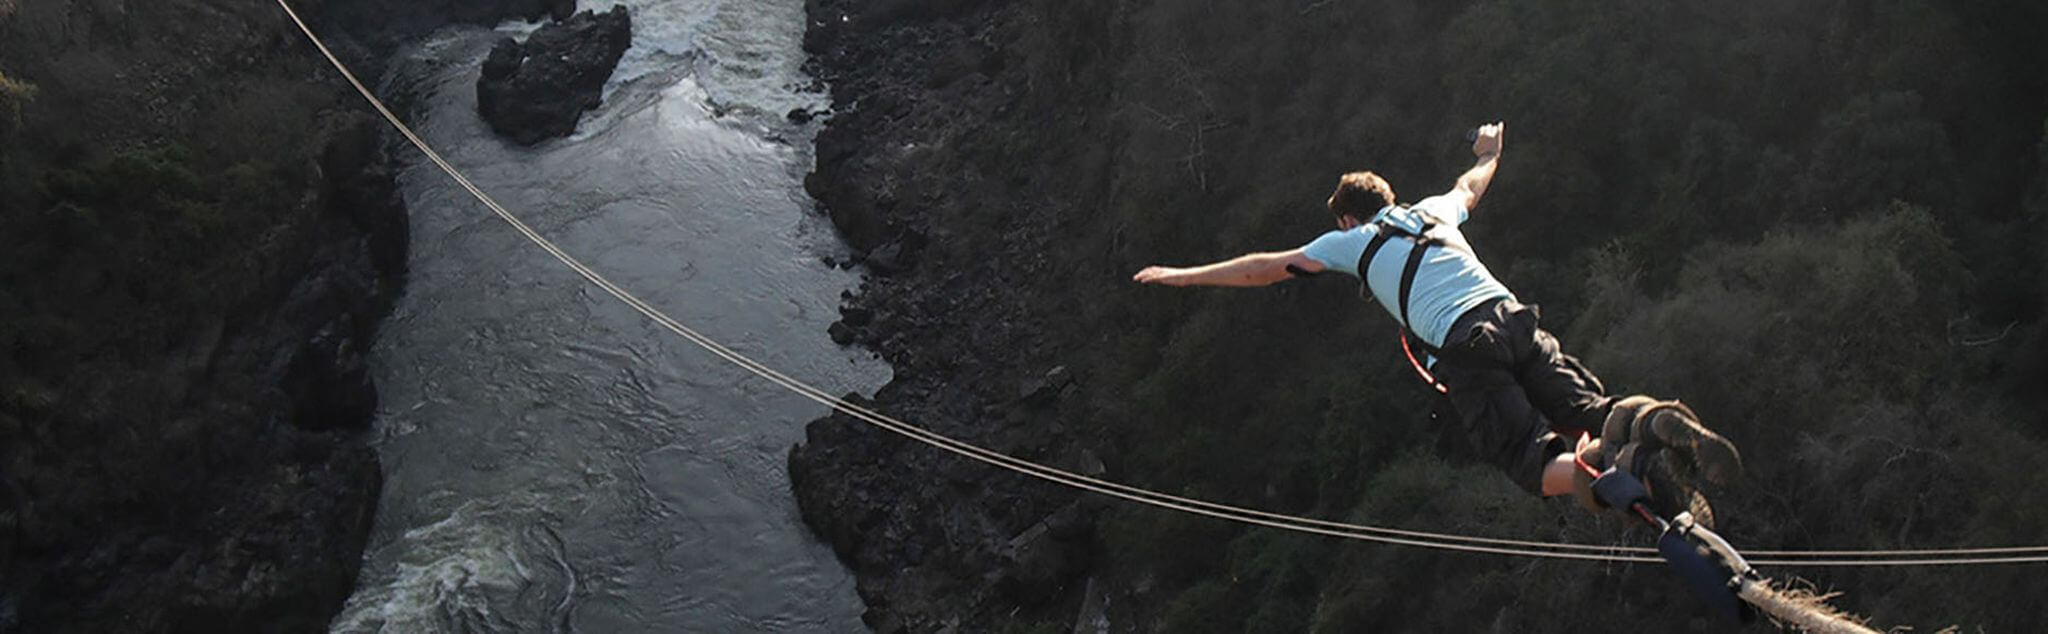 Bungee Jumping in Derbyshire